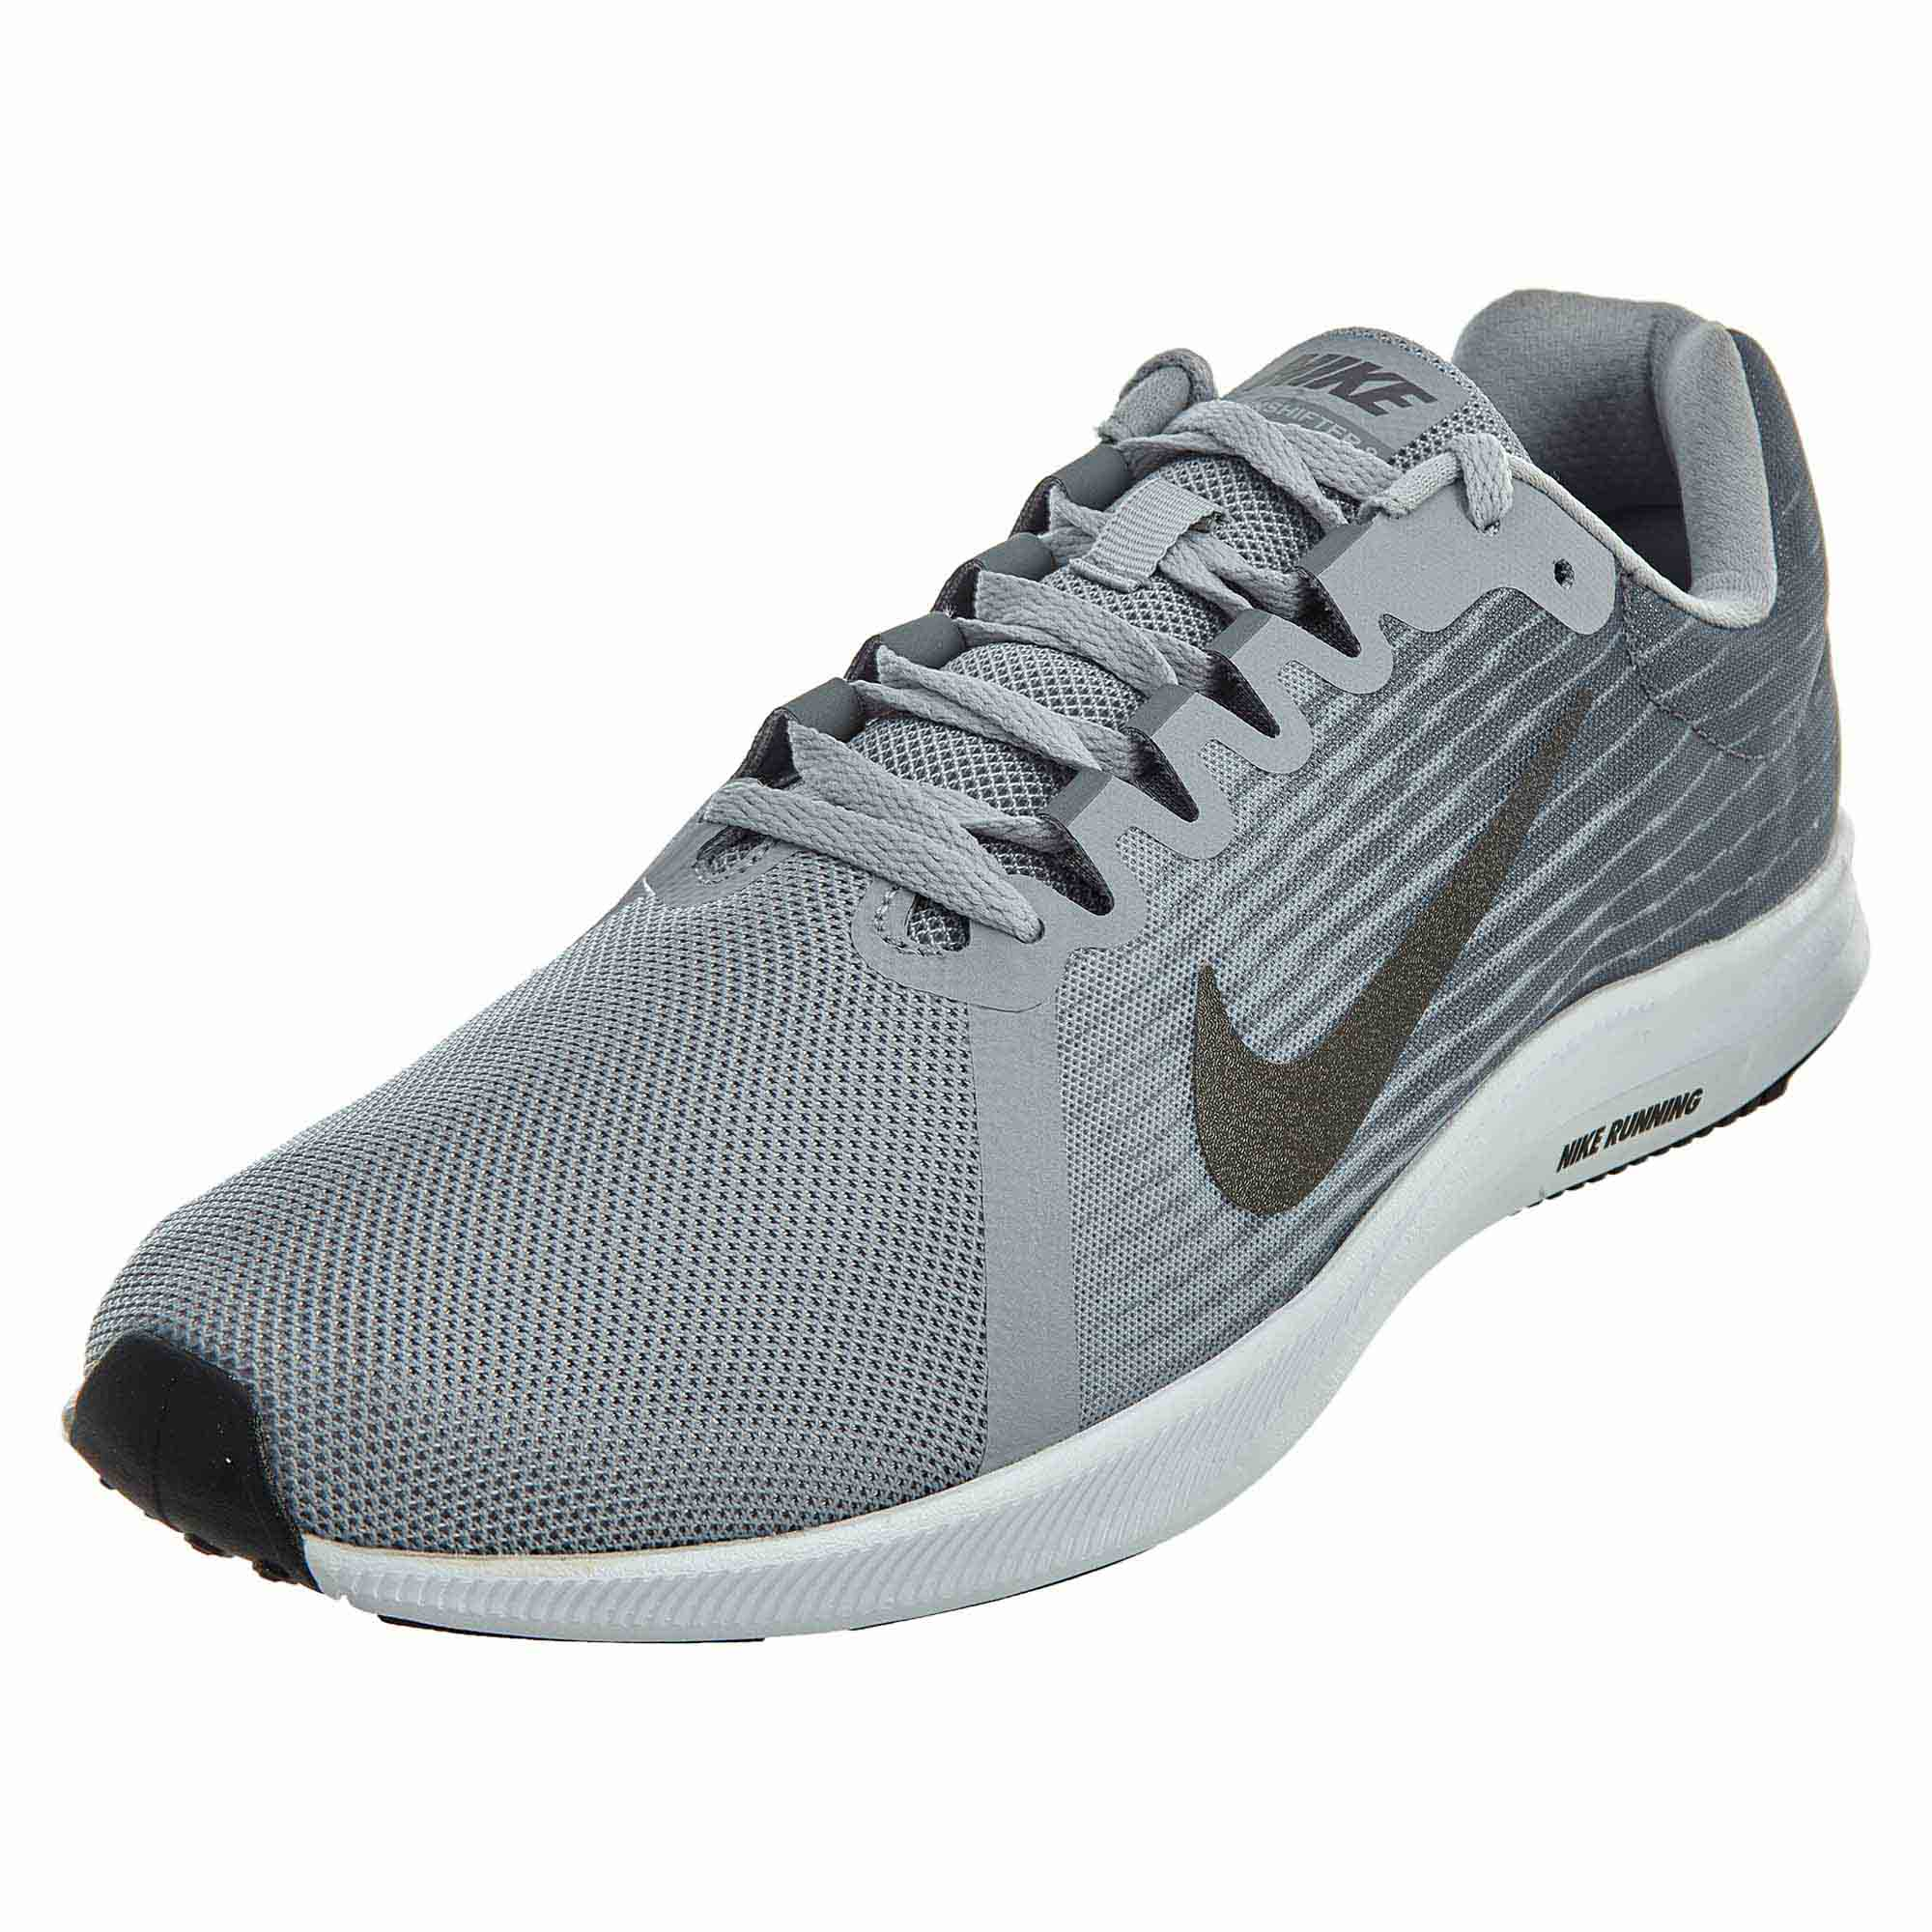 a7b828541442 Details about Nike Mens Downshifter 8 Running Shoes 908984-004